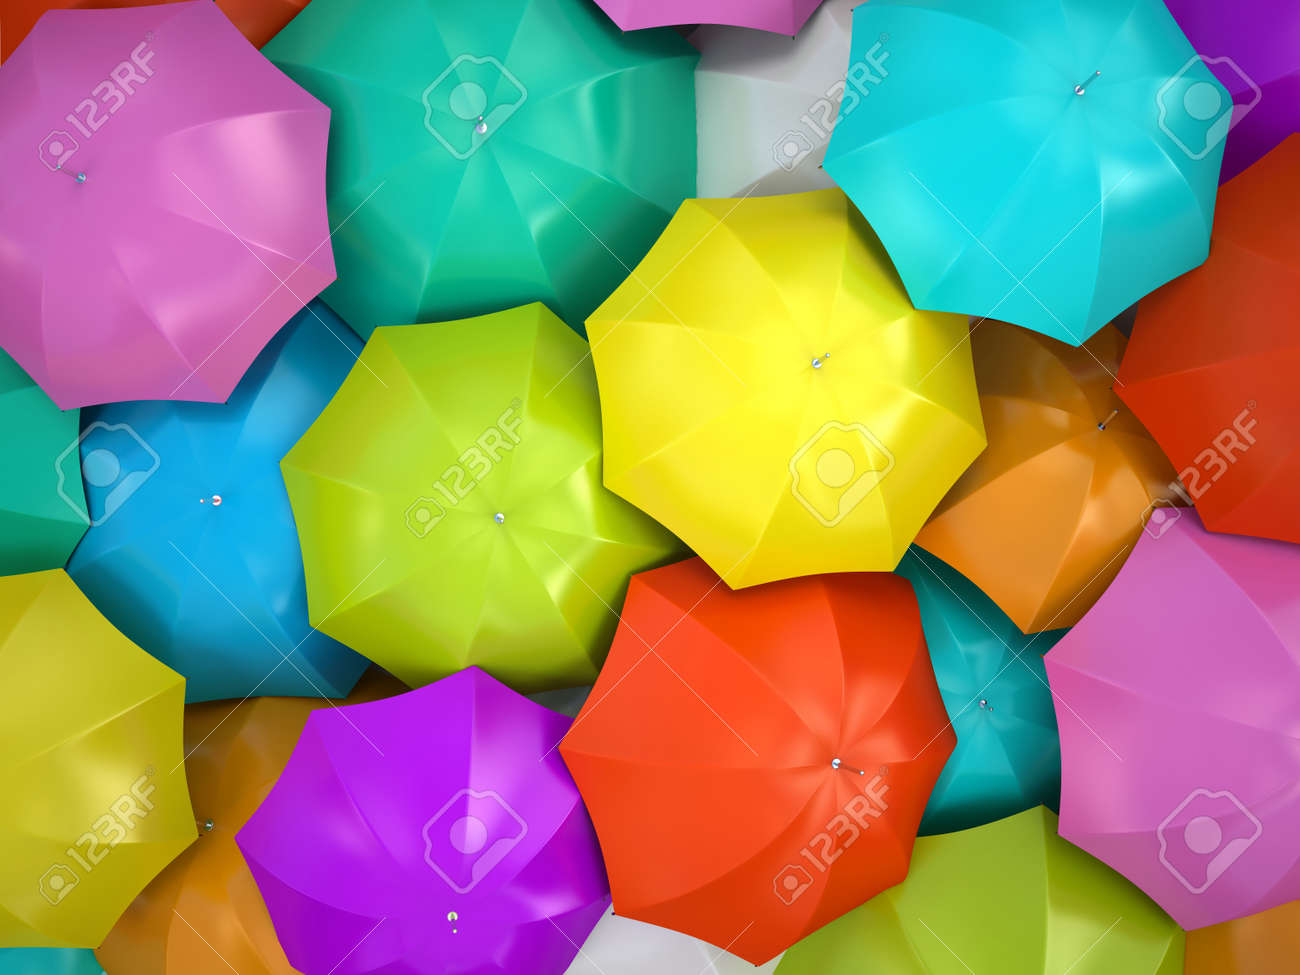 Colorful umbrellas 3D rendering Stock Photo - 15151117